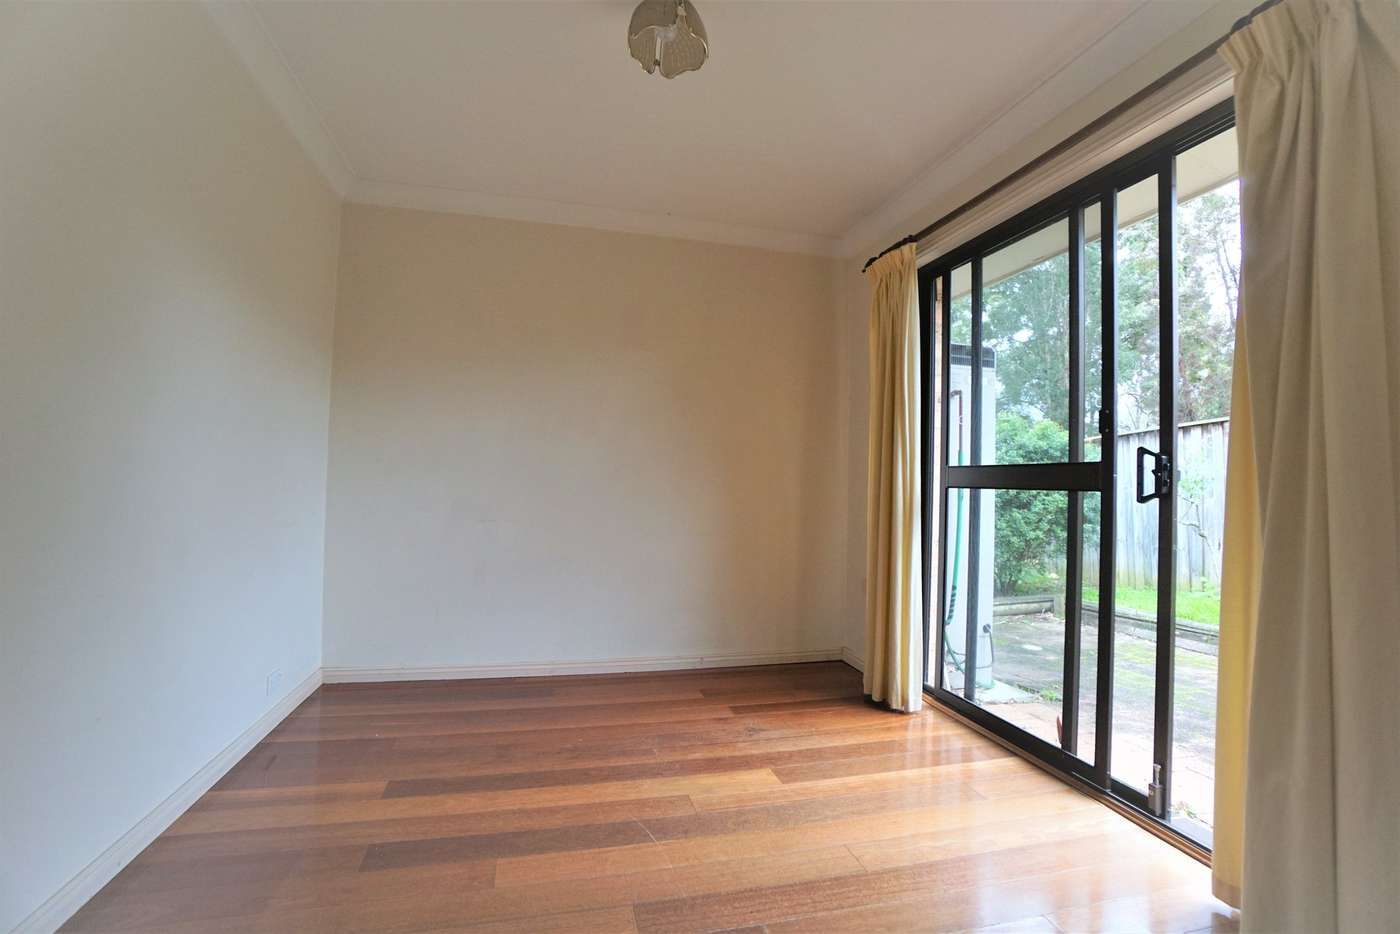 Sixth view of Homely villa listing, 3/16 Vimiera Road, Eastwood NSW 2122